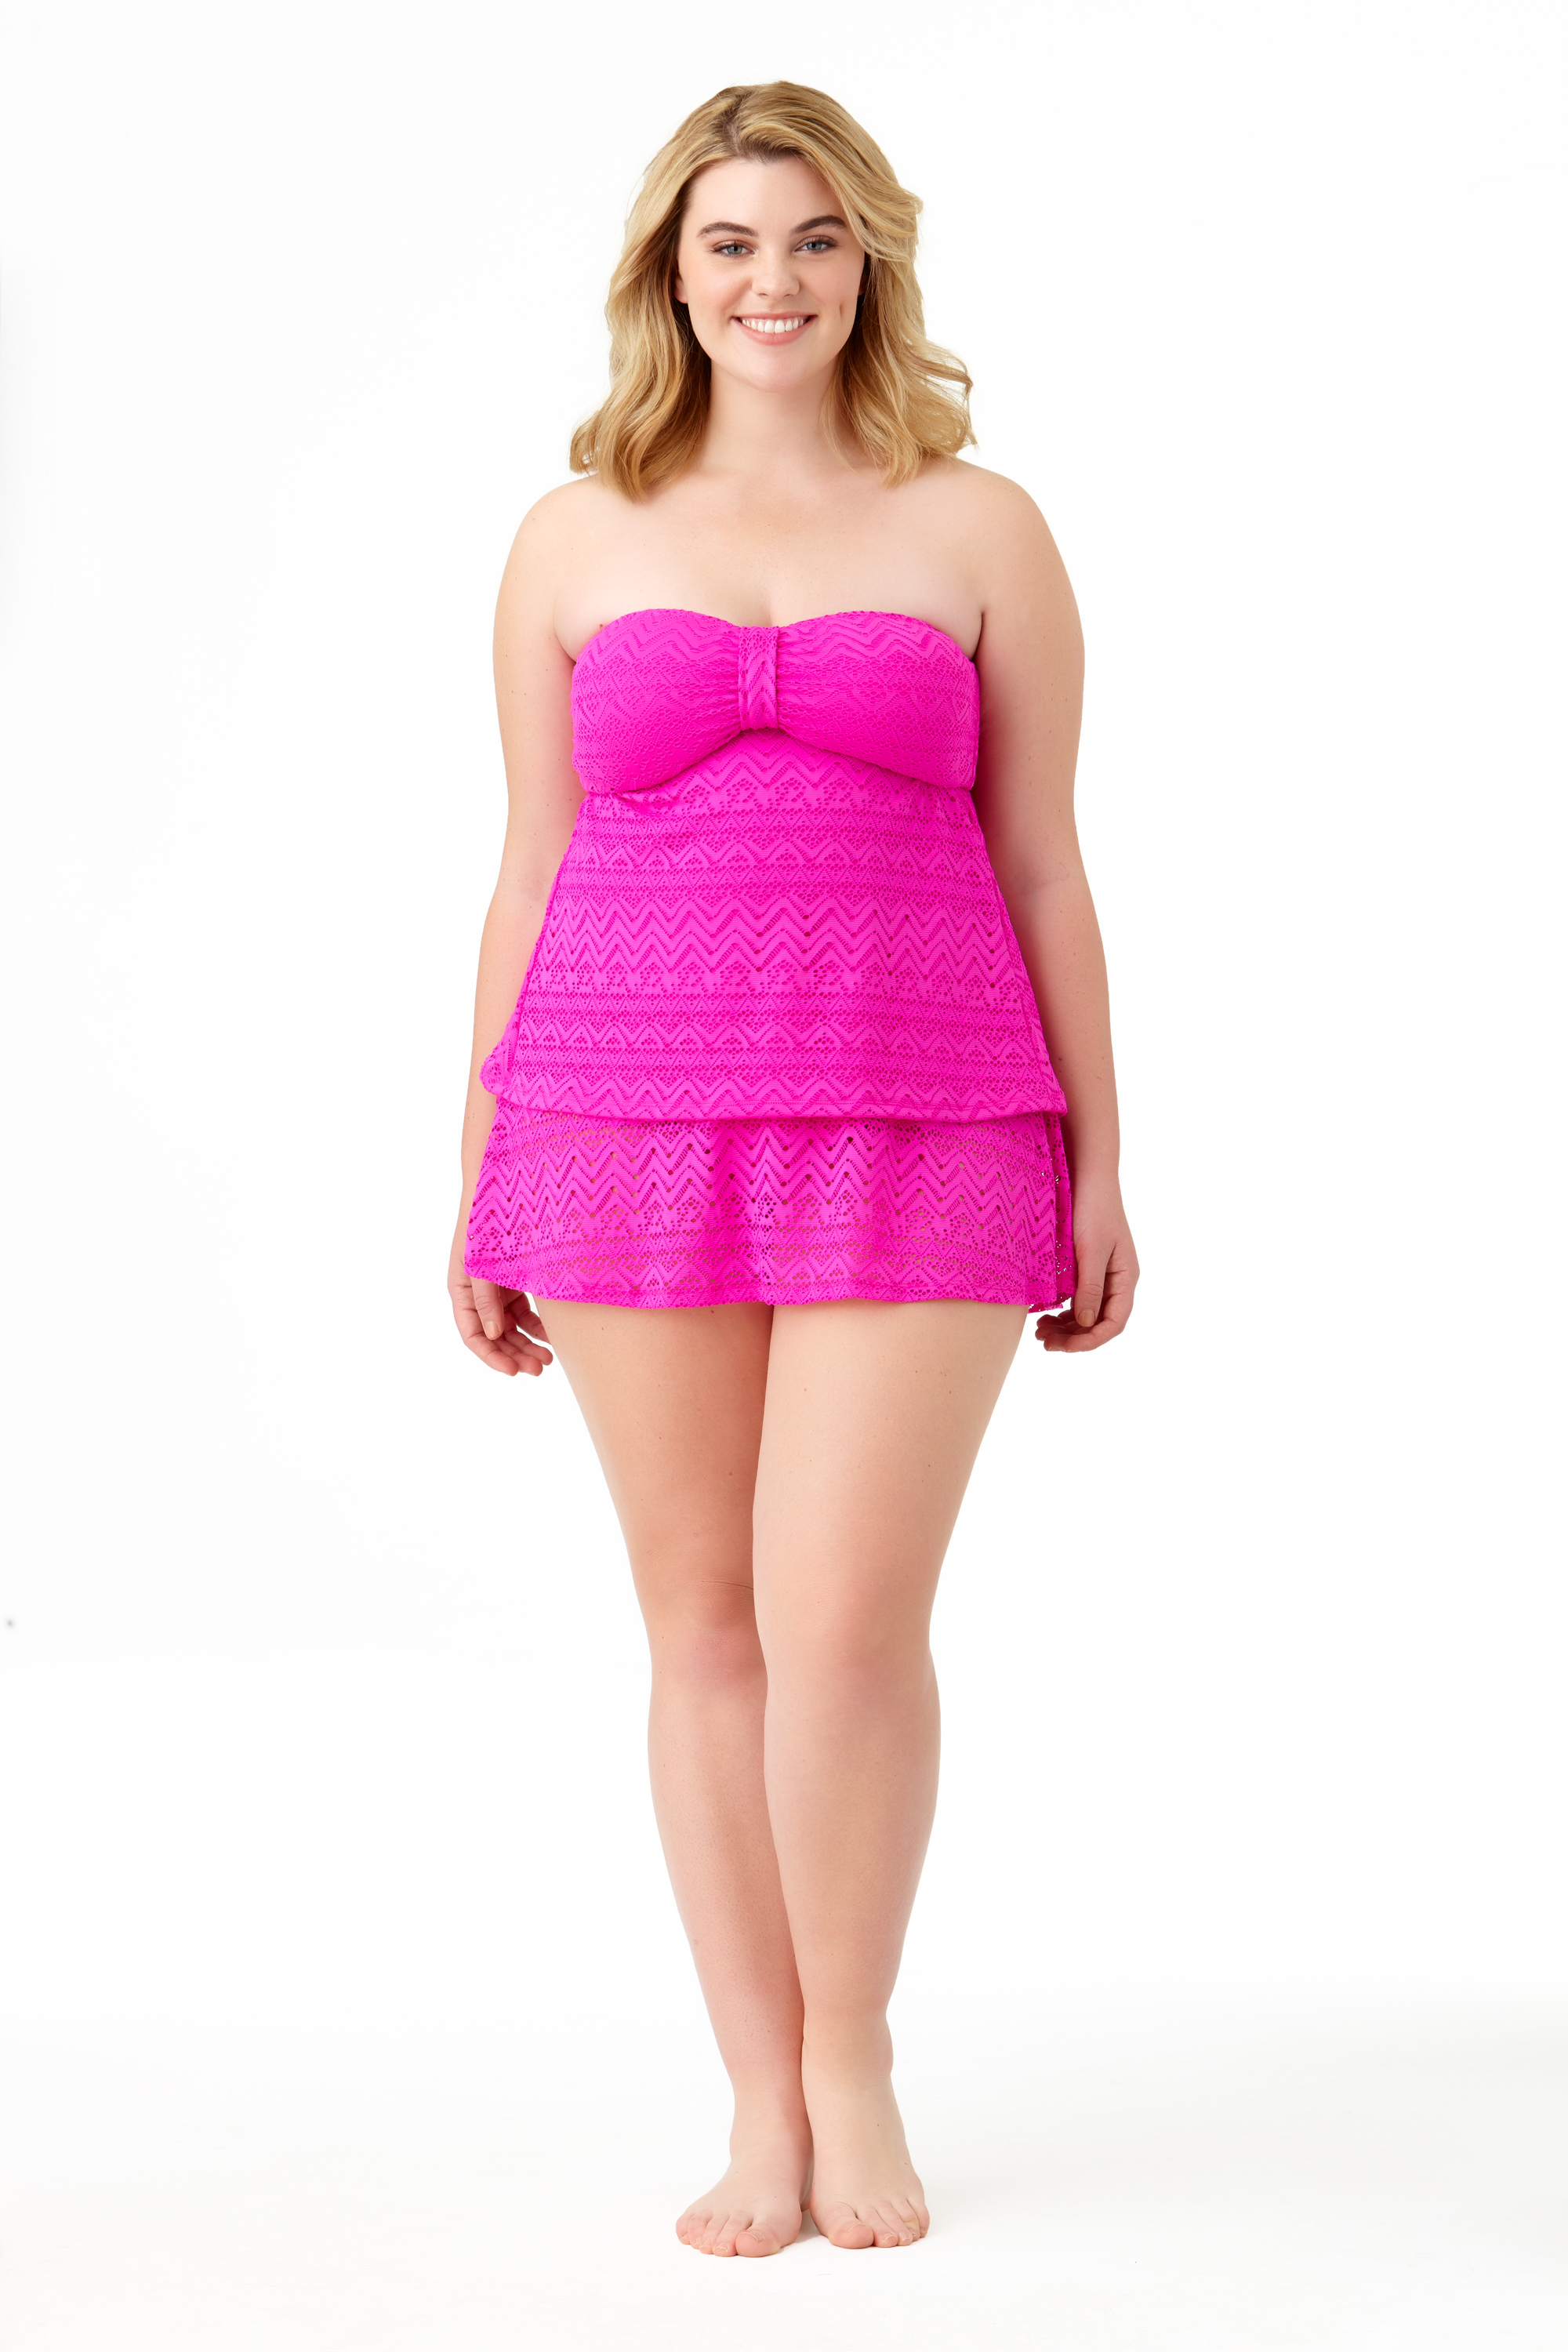 STYLE #CTP27411T /CTP27703B - Solid Crochet Bandini TopSOLD OUTSolid Crochet Skirted BottomSOLD OUT